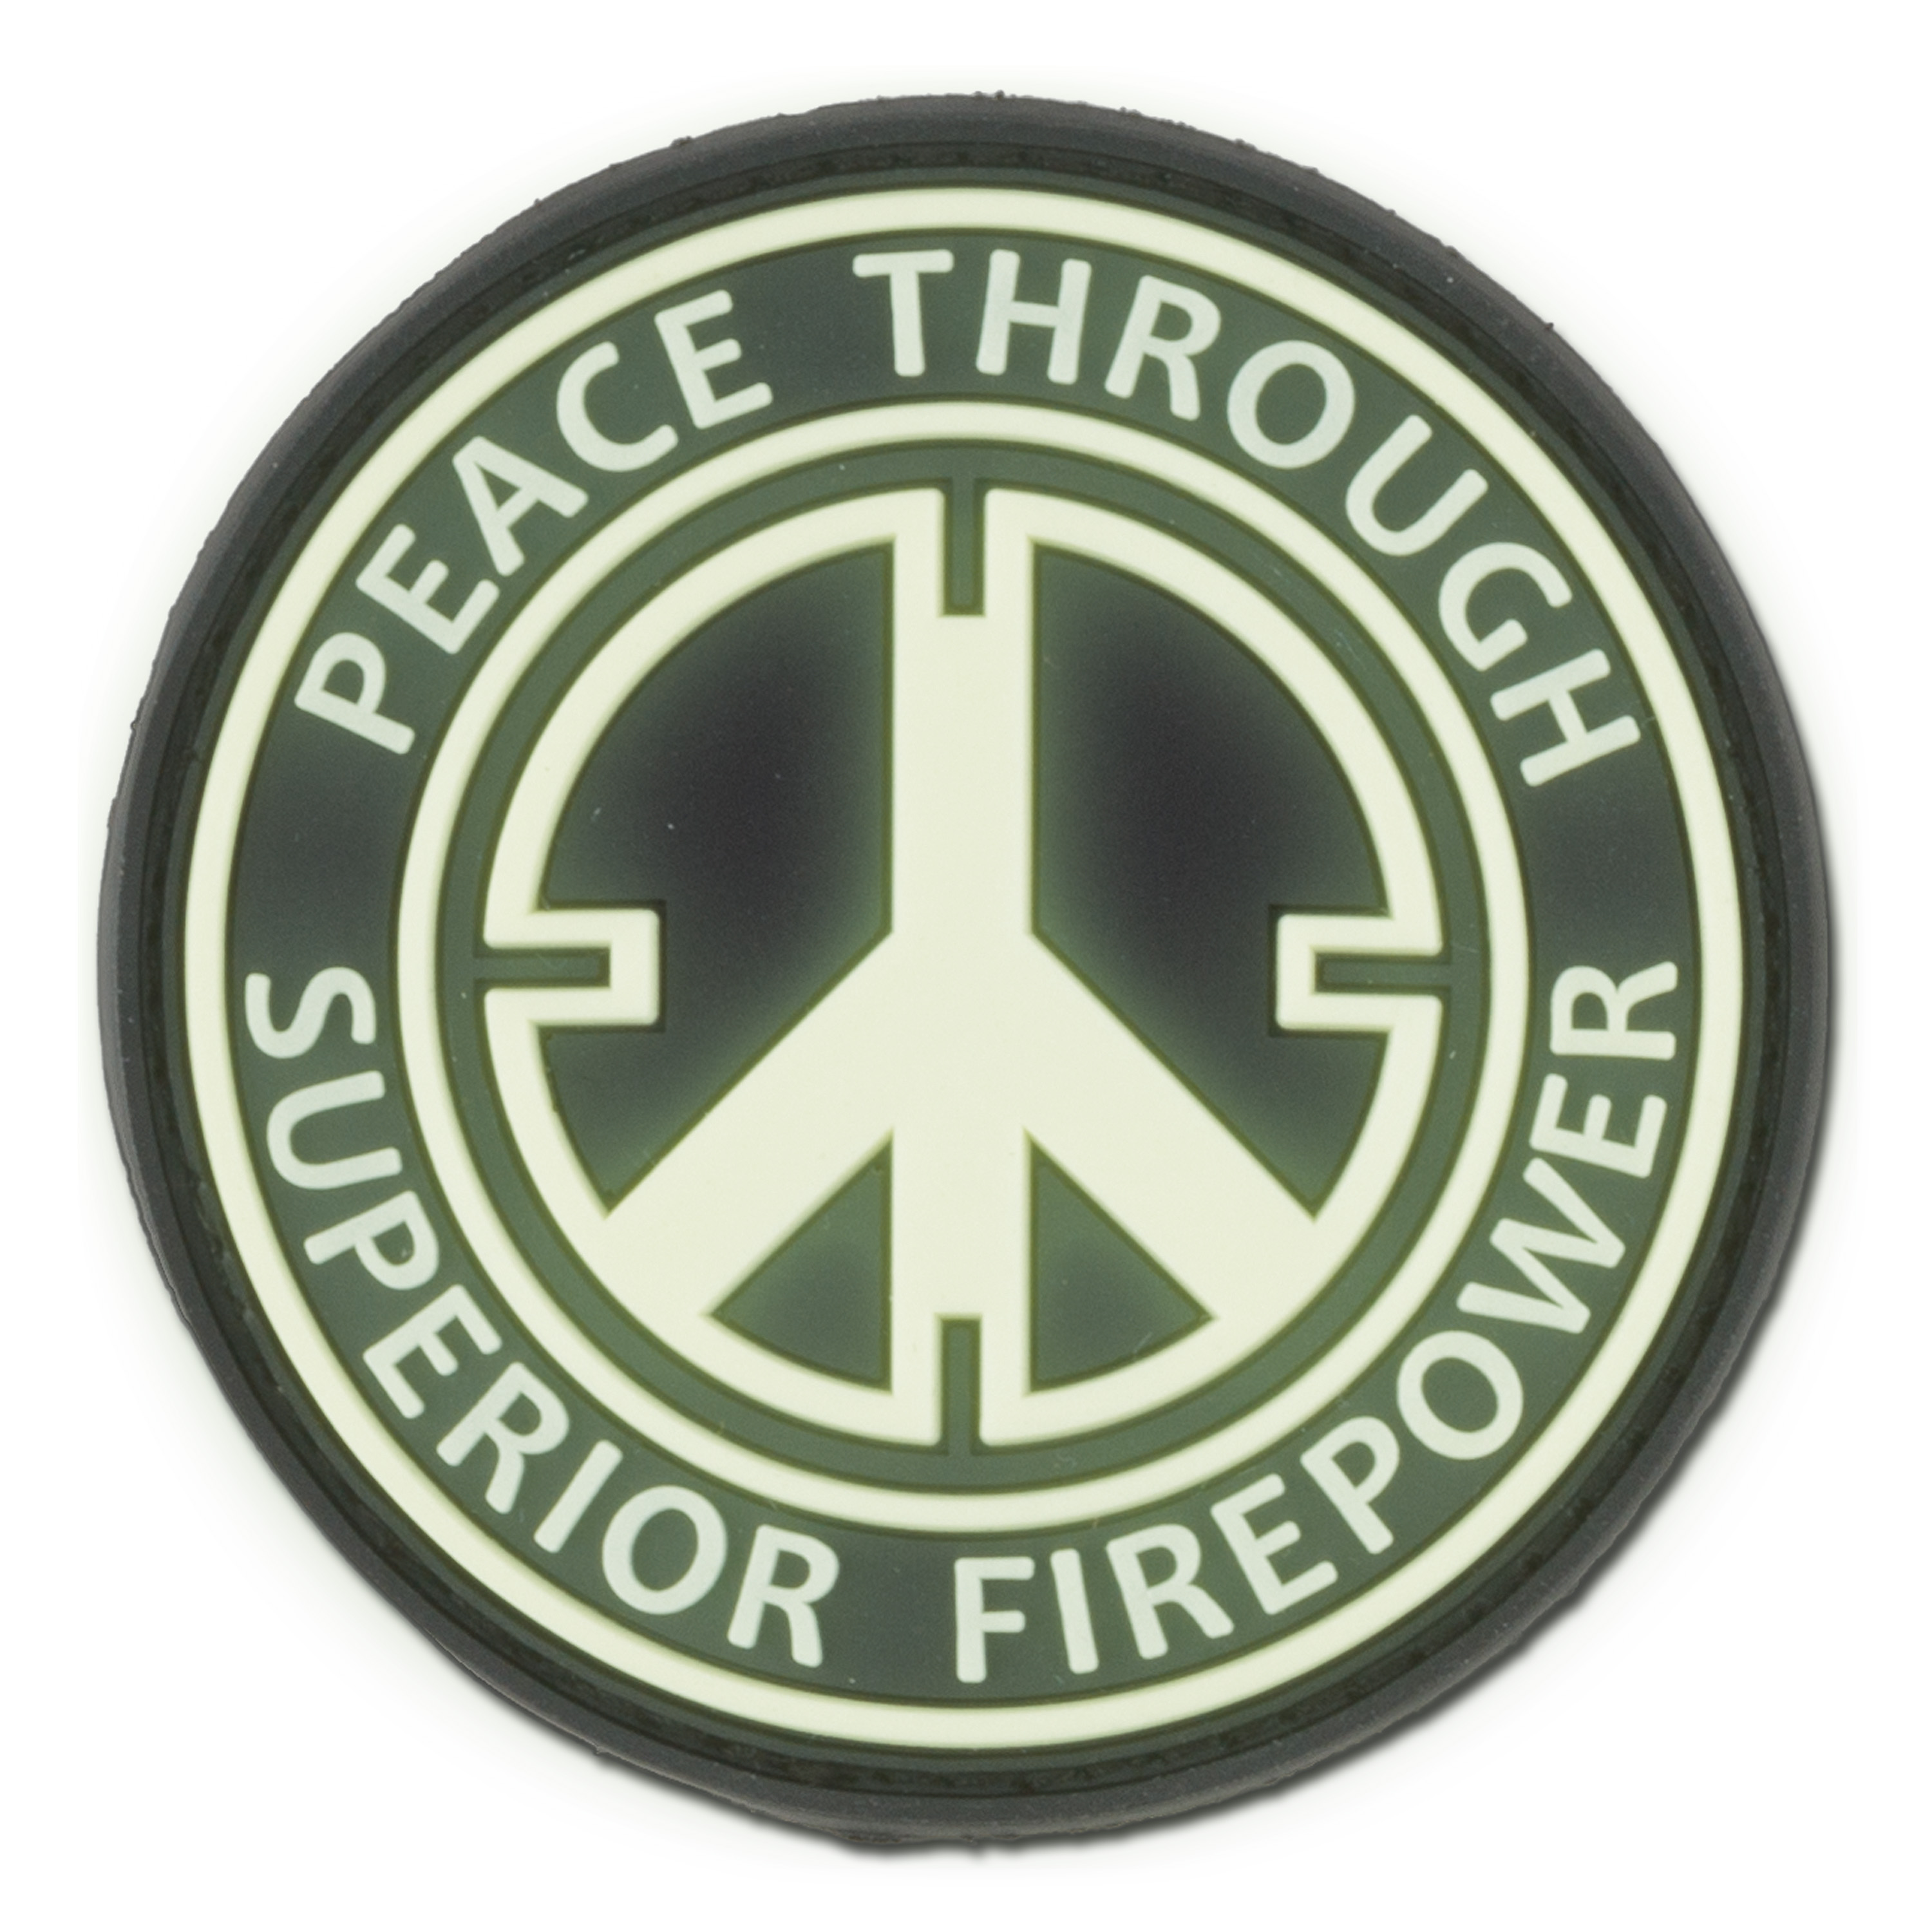 3D-Patch Peace Through Superior Firepower nachleuchtend